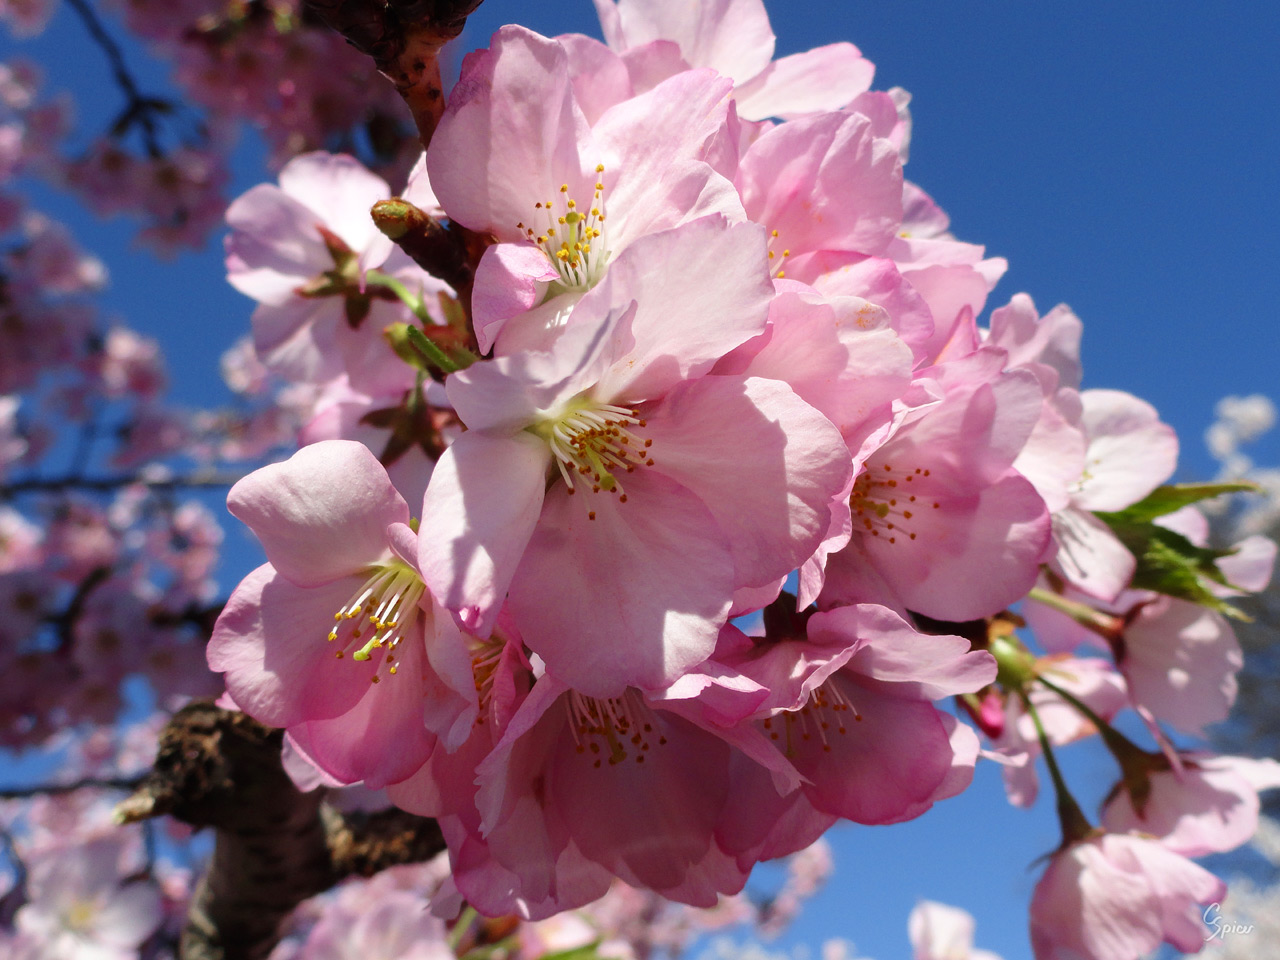 Pink Cherry Blossoms: Digital Photograph by Christopher Spicer - In full bloom, the pink blossoms of a cherry tree spread out across a blue sky.